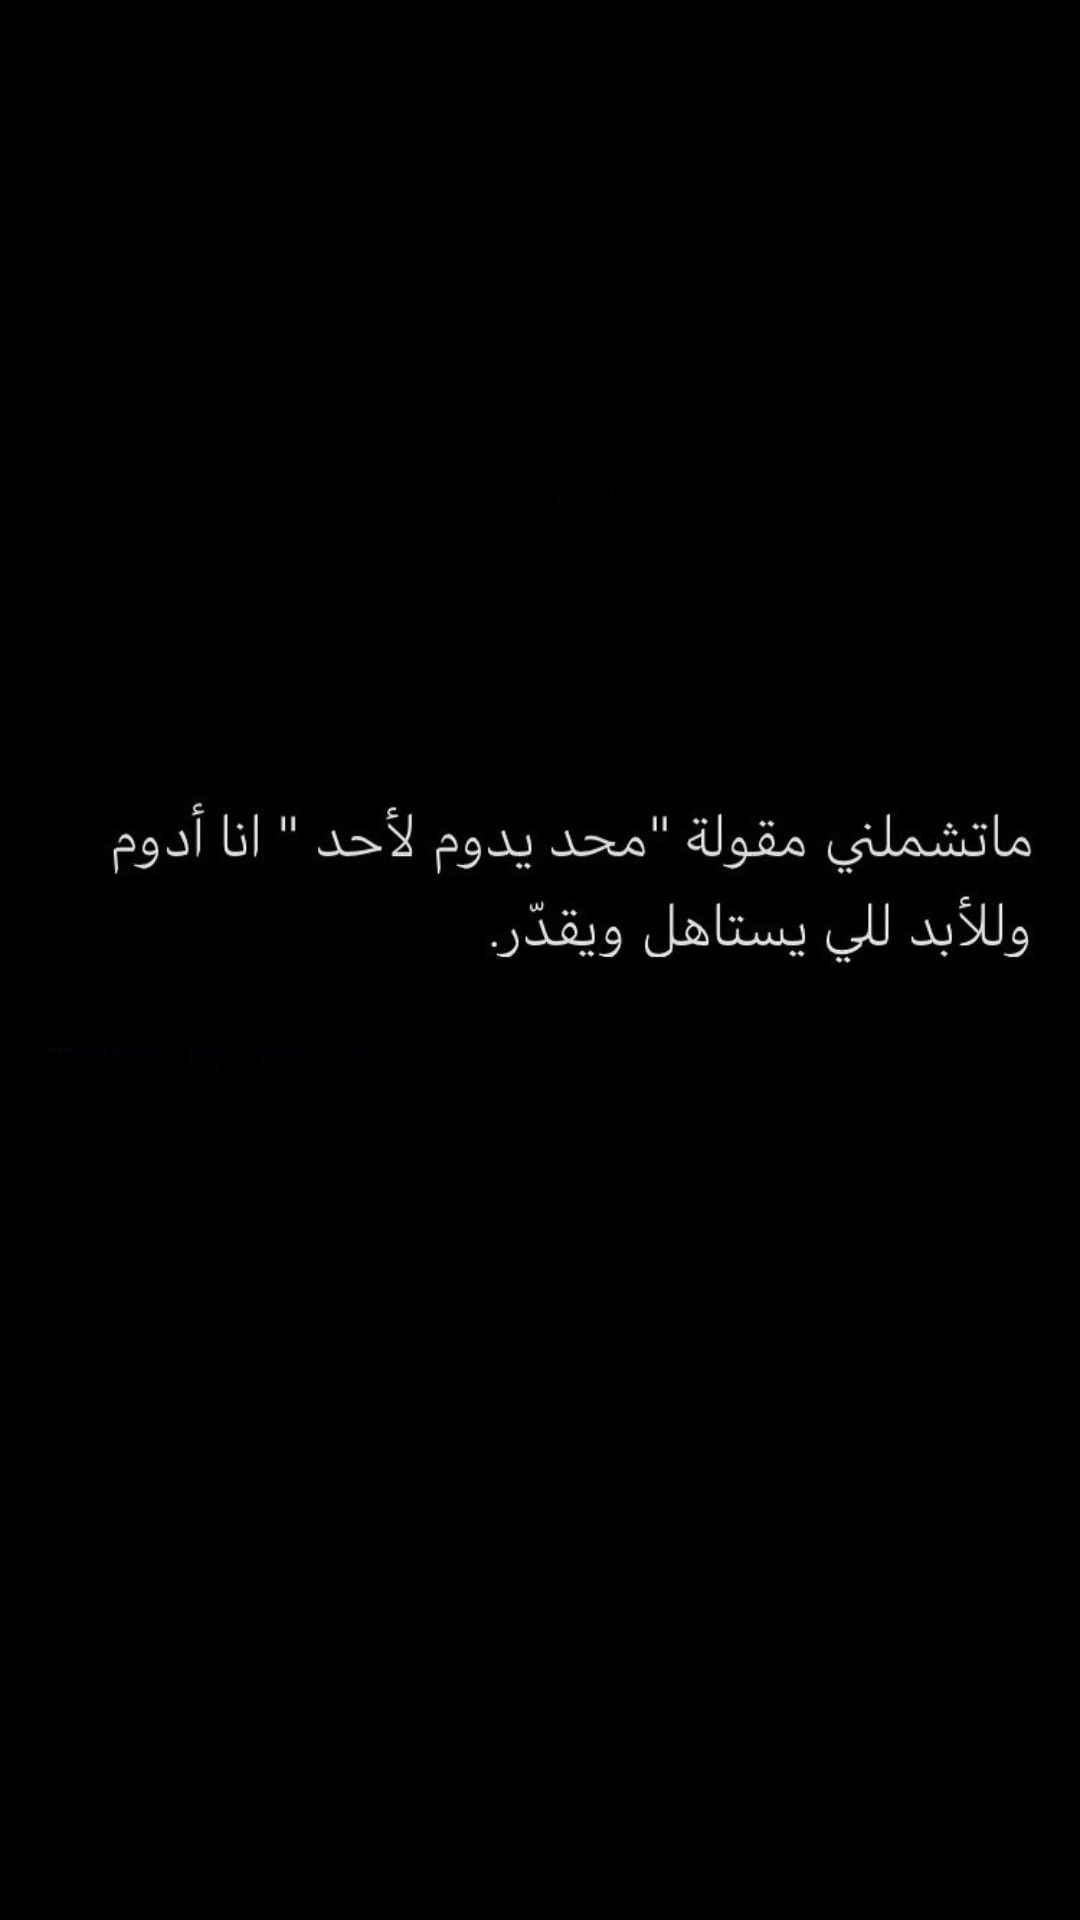 Pin By باسم الزهراني On بعثرة كلام In 2020 Wisdom Quotes Life Cover Photo Quotes Funny Arabic Quotes